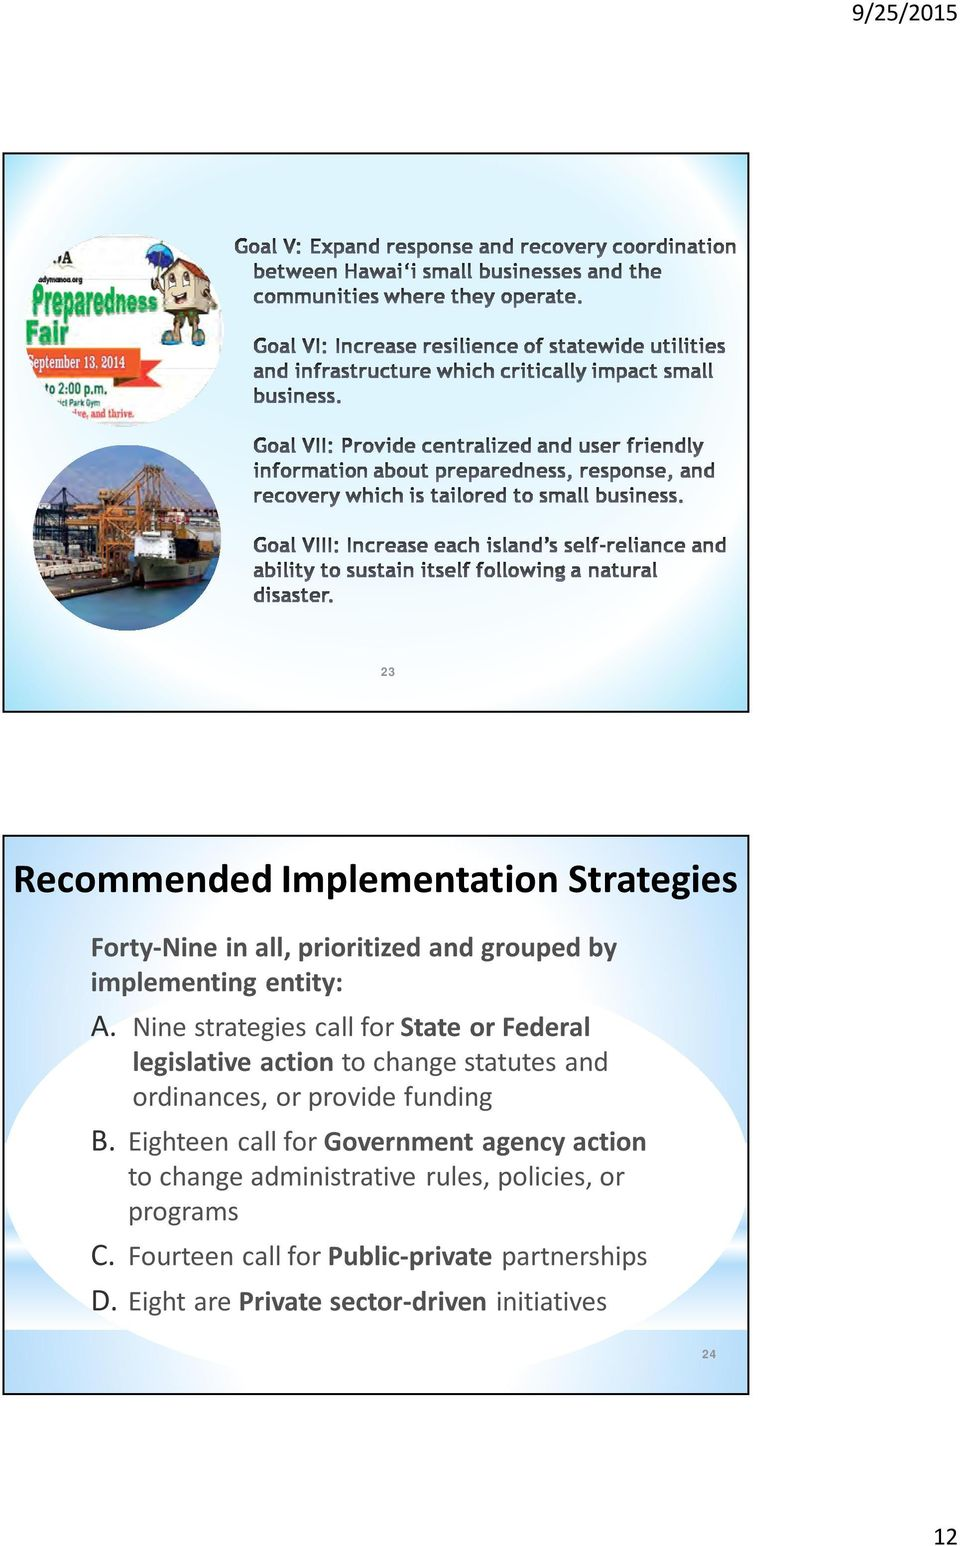 Nine strategies call for State or Federal legislative action to change statutes and ordinances, or provide